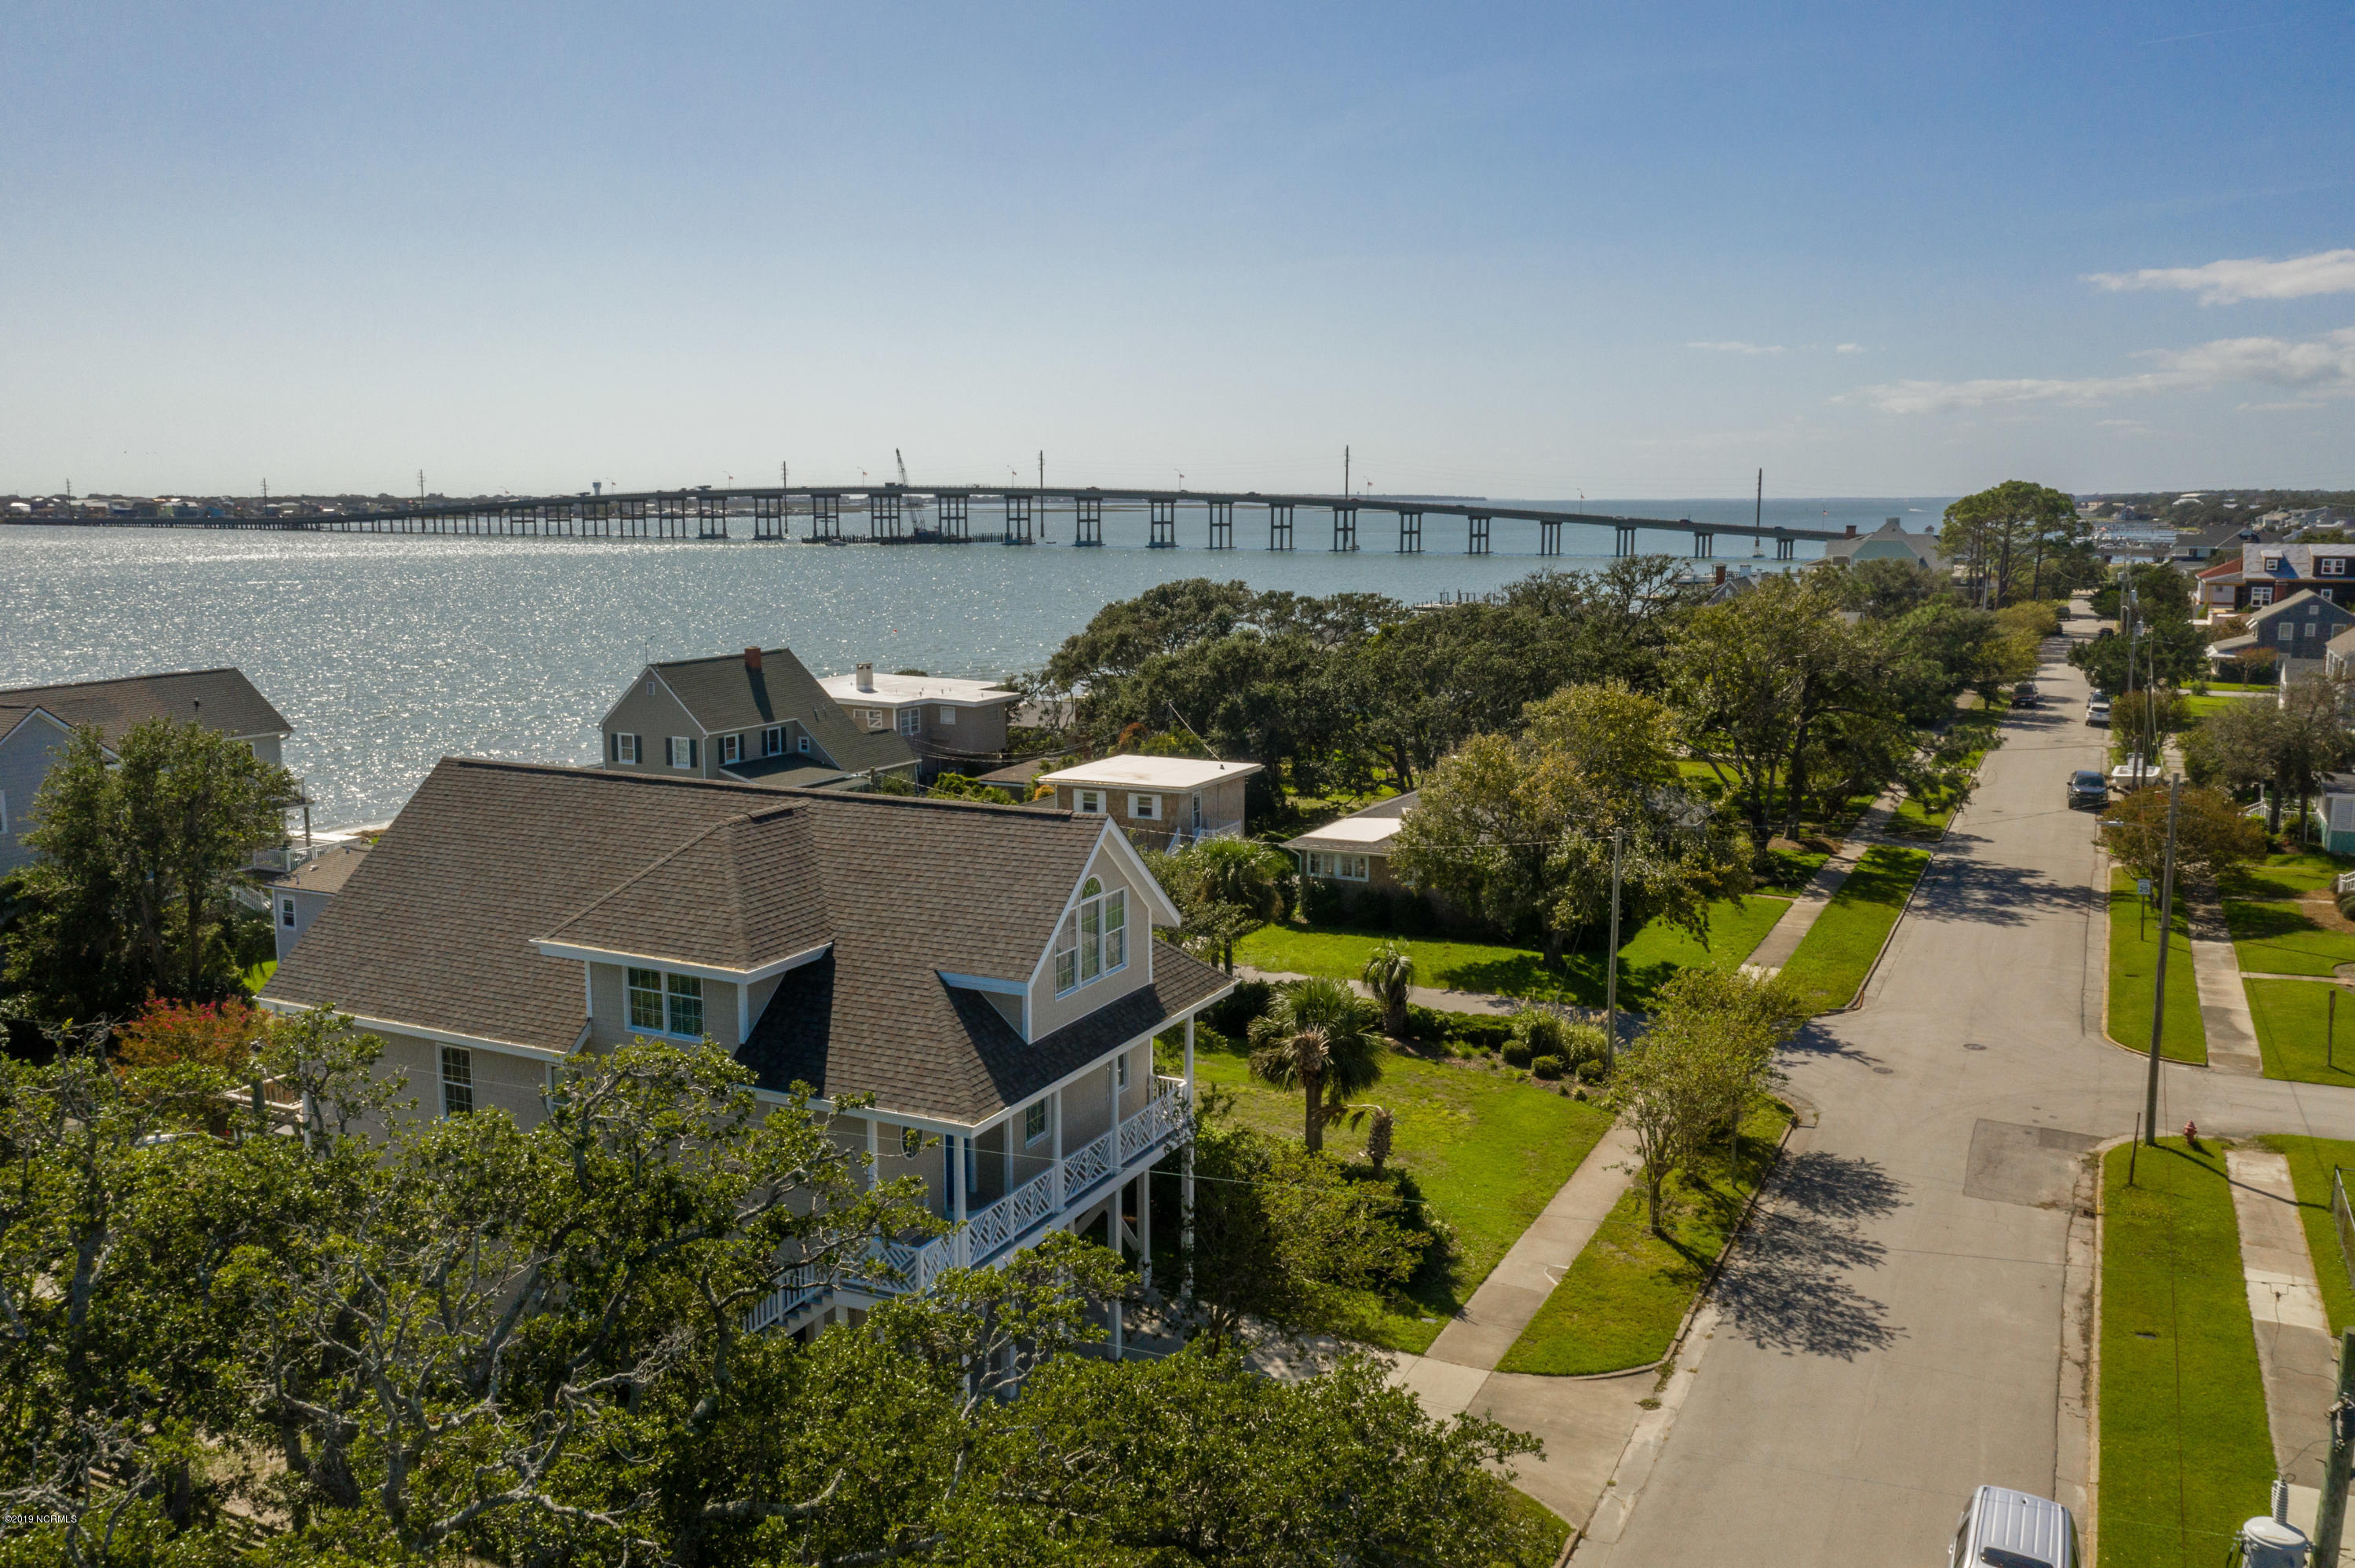 3 bed / 2 full, 1 partial baths Home in Morehead City for $779,000